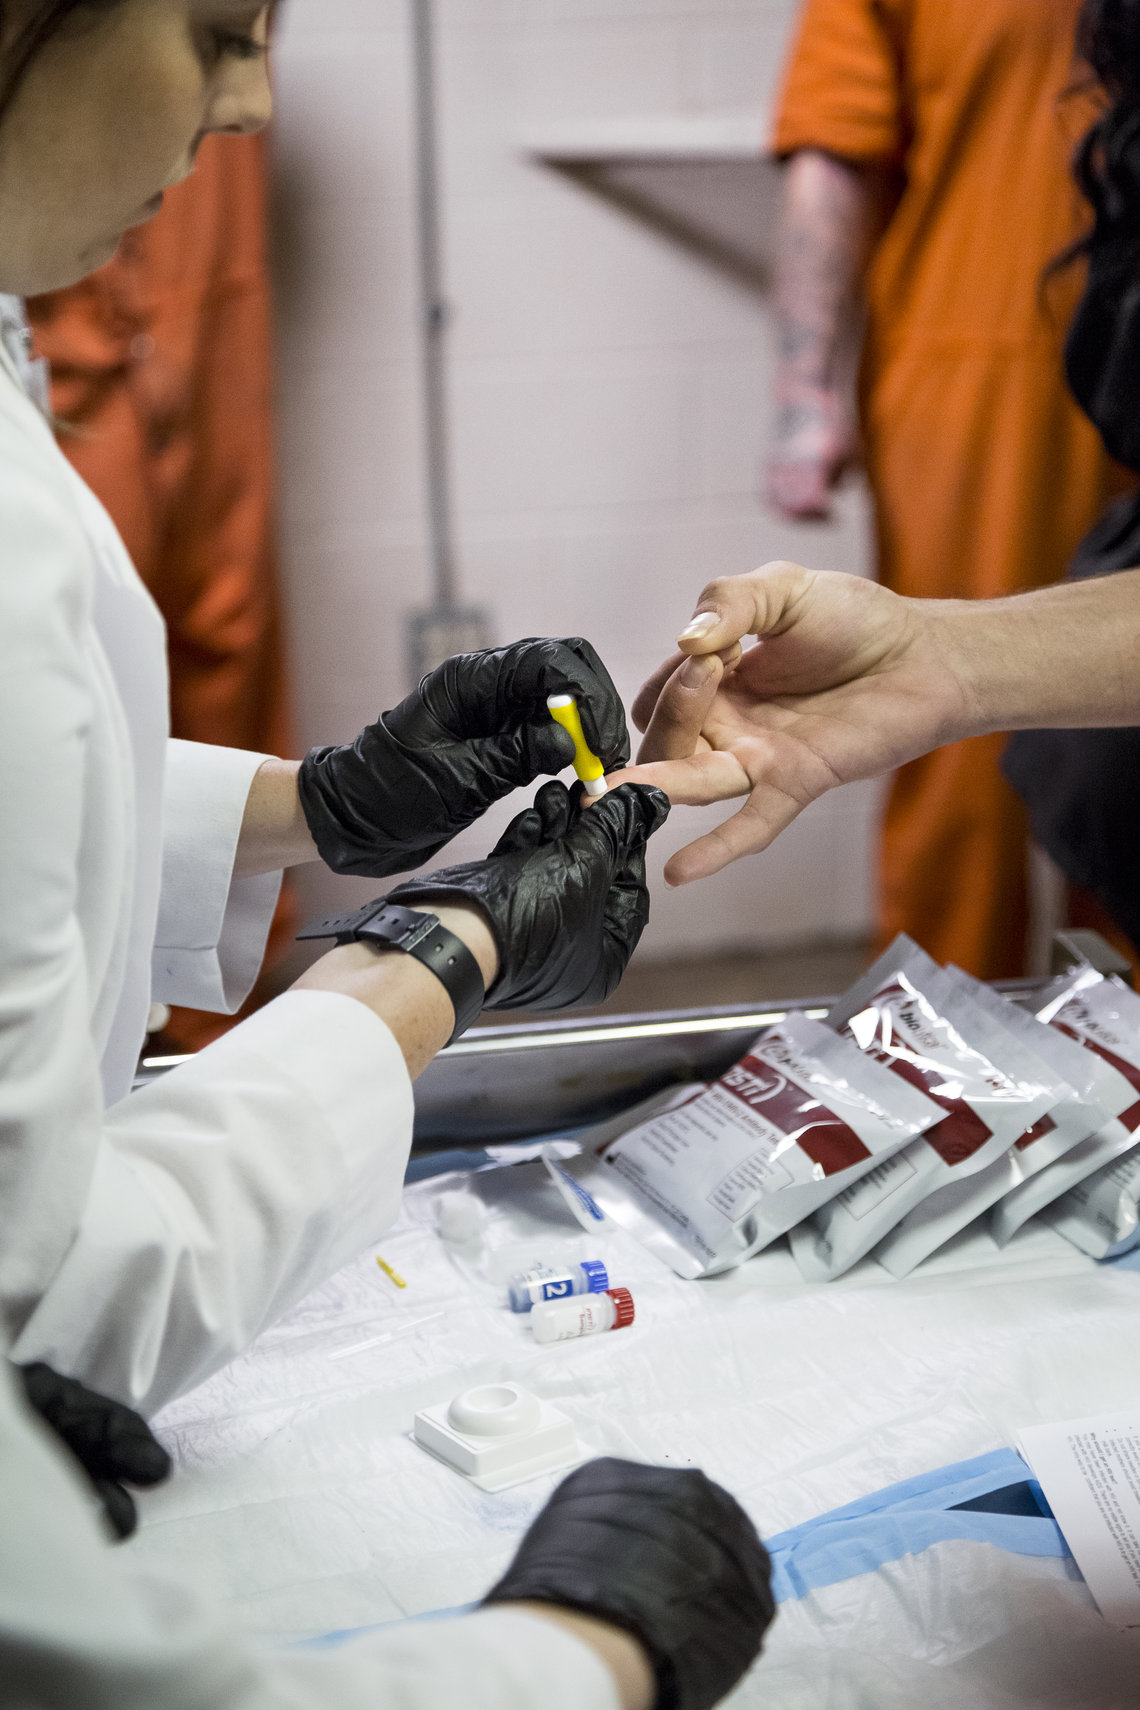 Why Some Prisoners With HIV Get Better Treatment Than Others